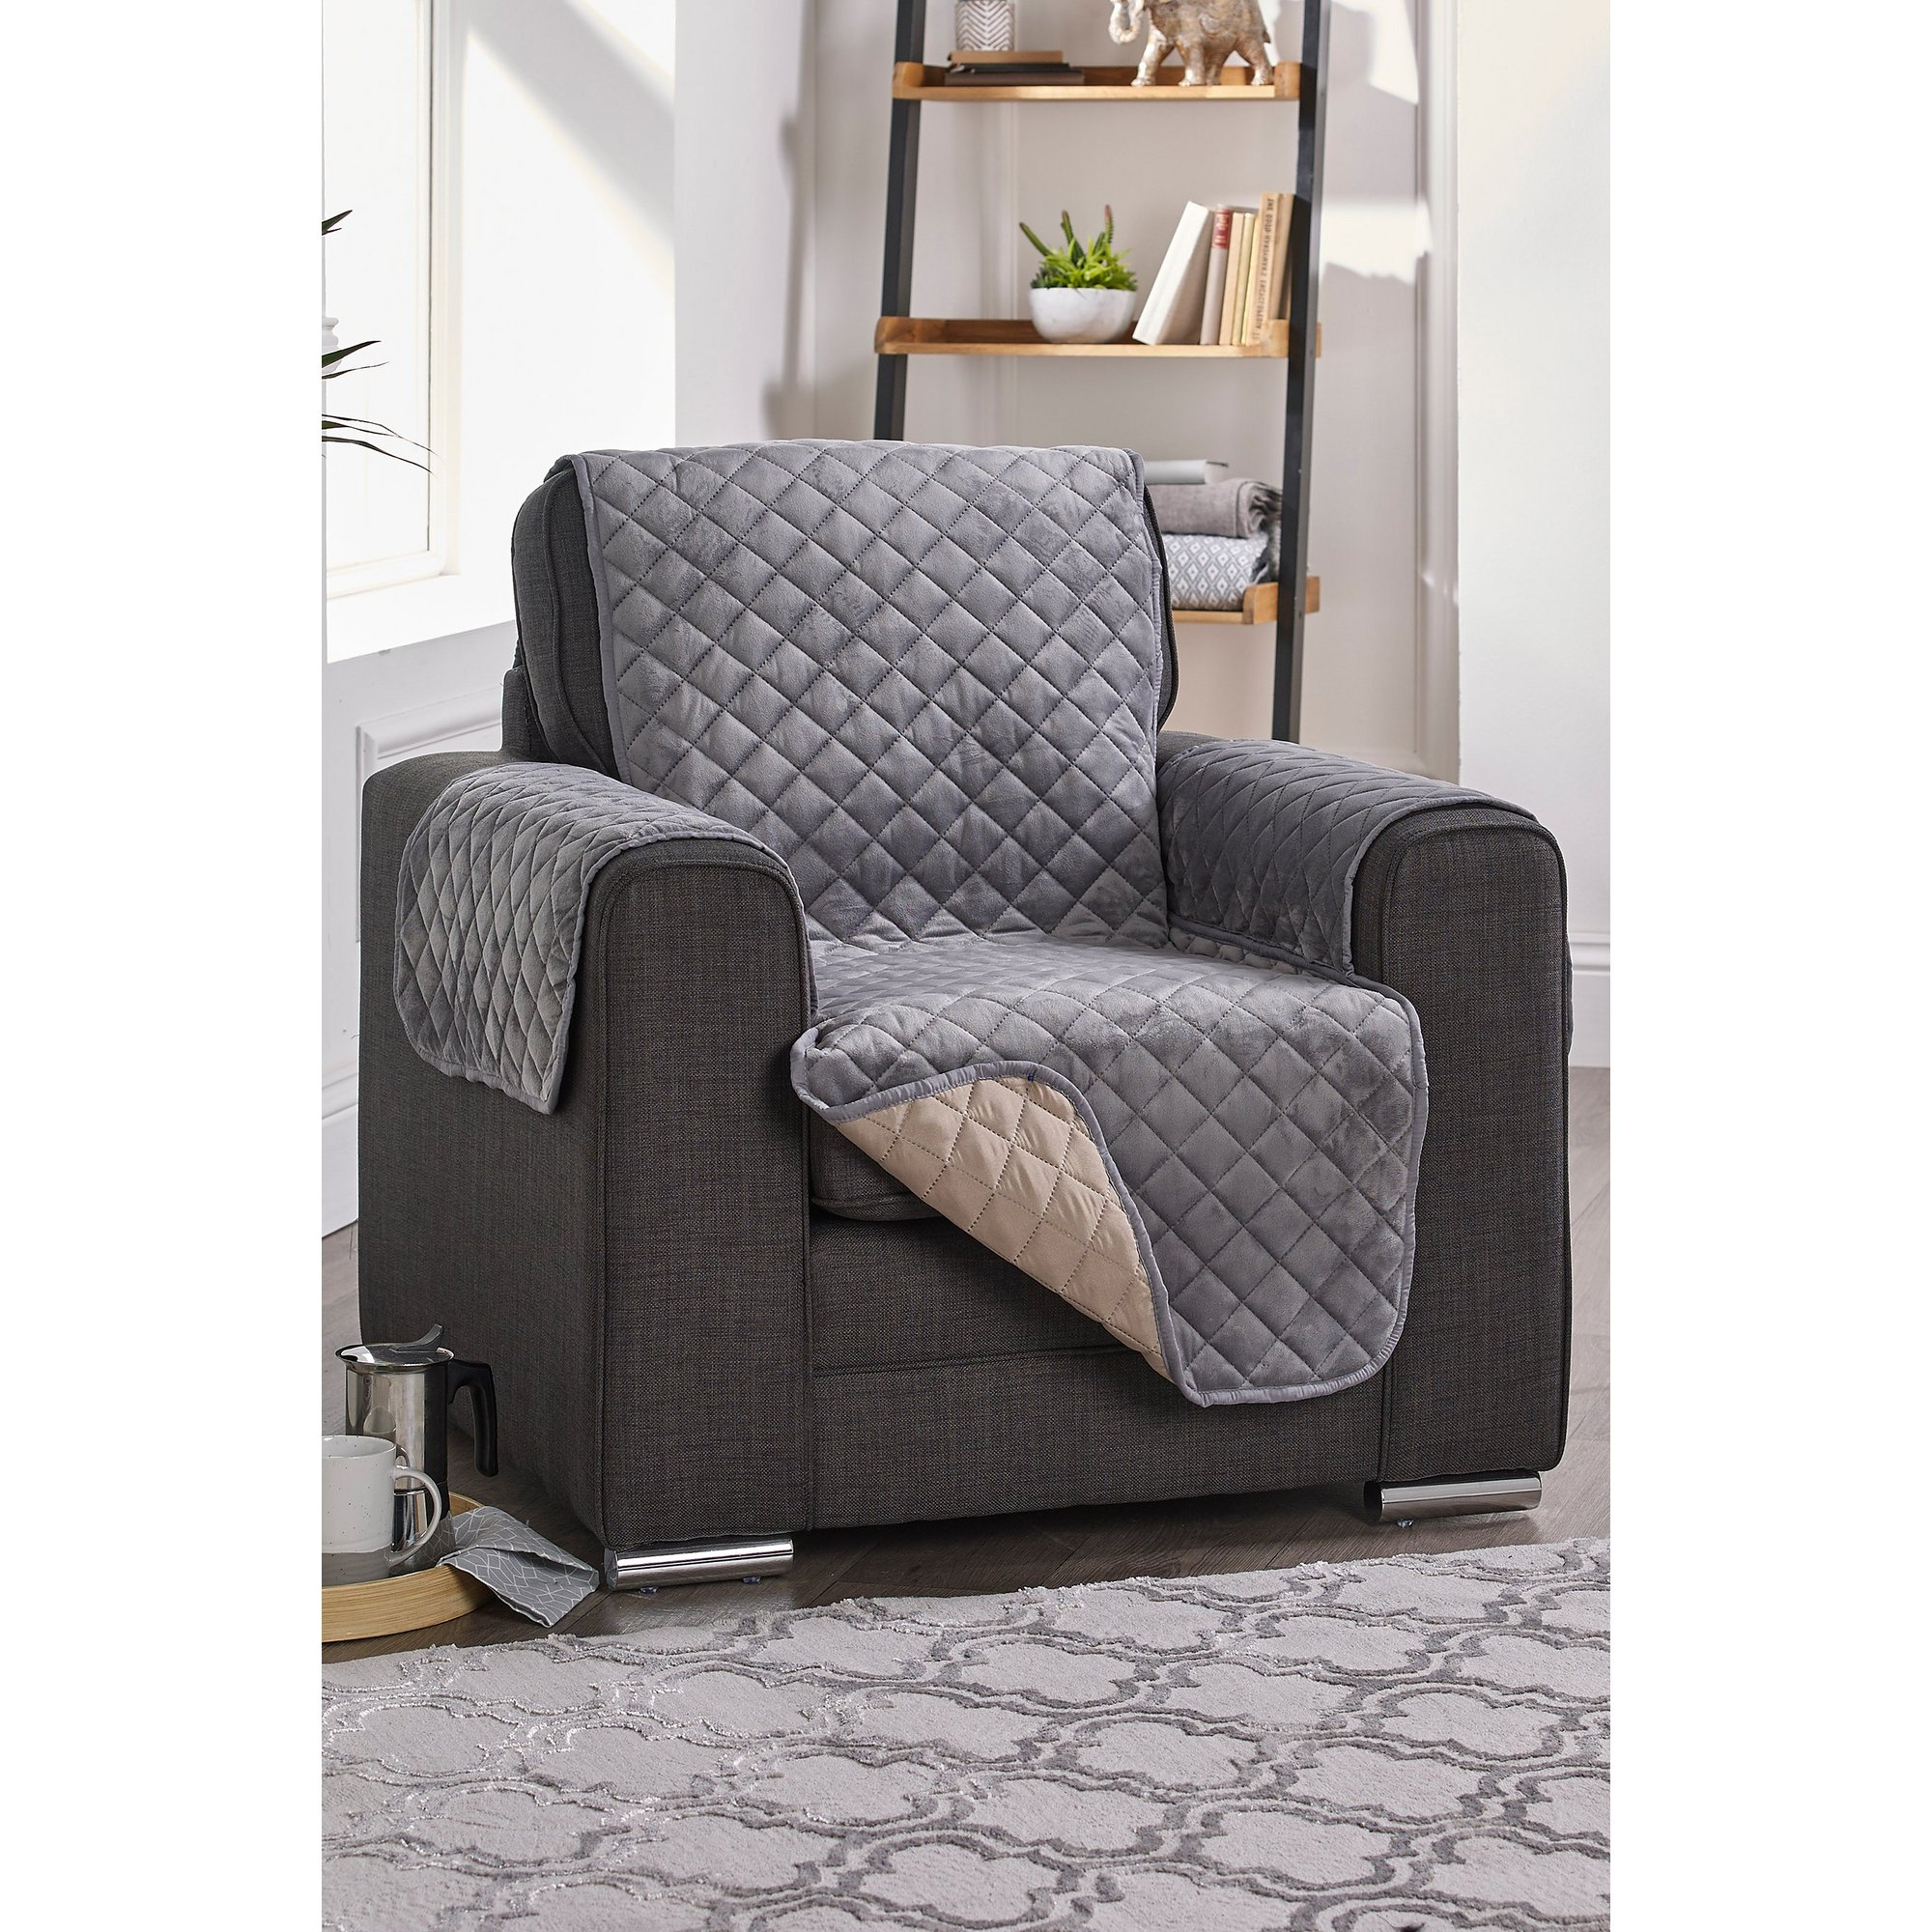 Image of Reversible Faux Velvet Furniture Protector